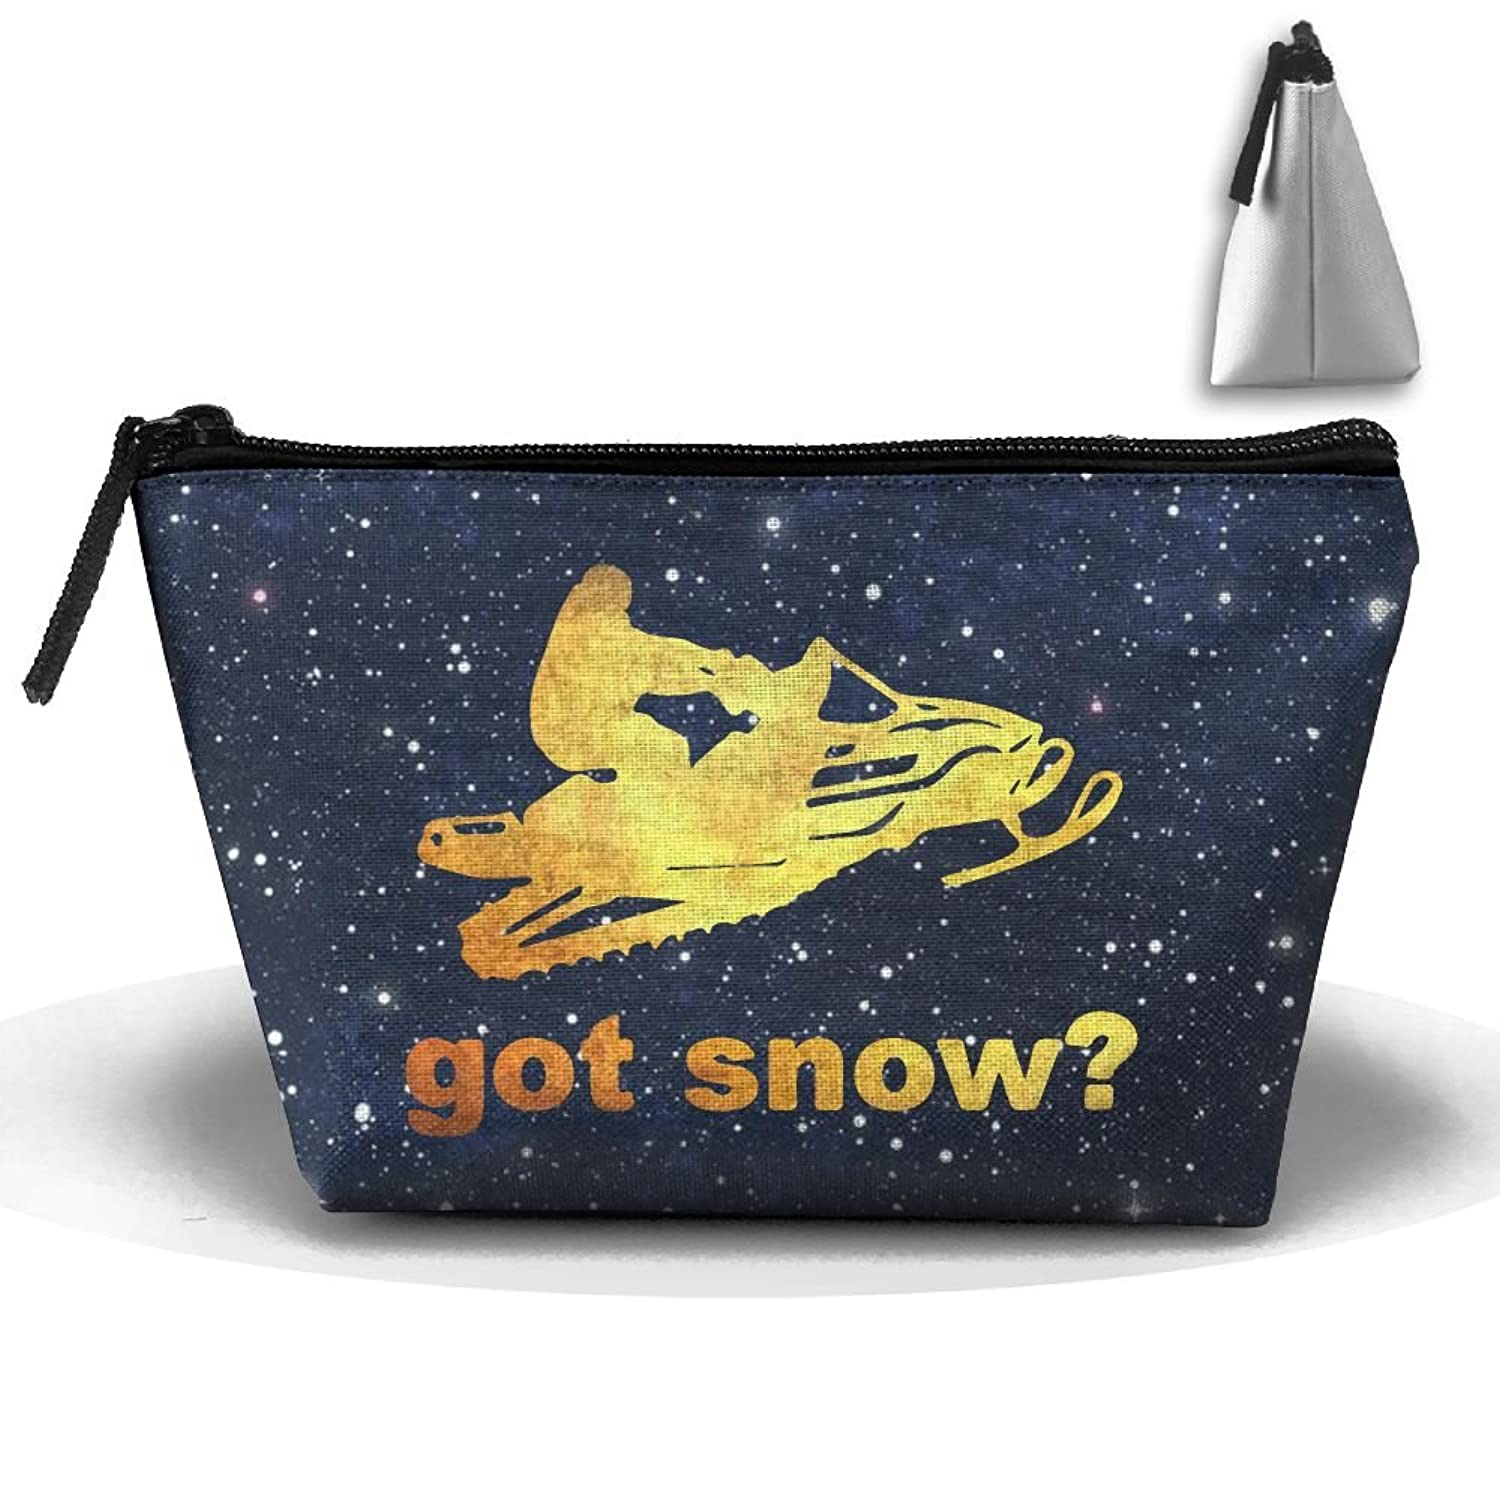 Got Snow Snowmobile Portable Trapezoid Cosmetic Makeup Bag Travel Case Multi-Functional Zipper Closure Pouch Storage Bag For Toiletry And Skincare